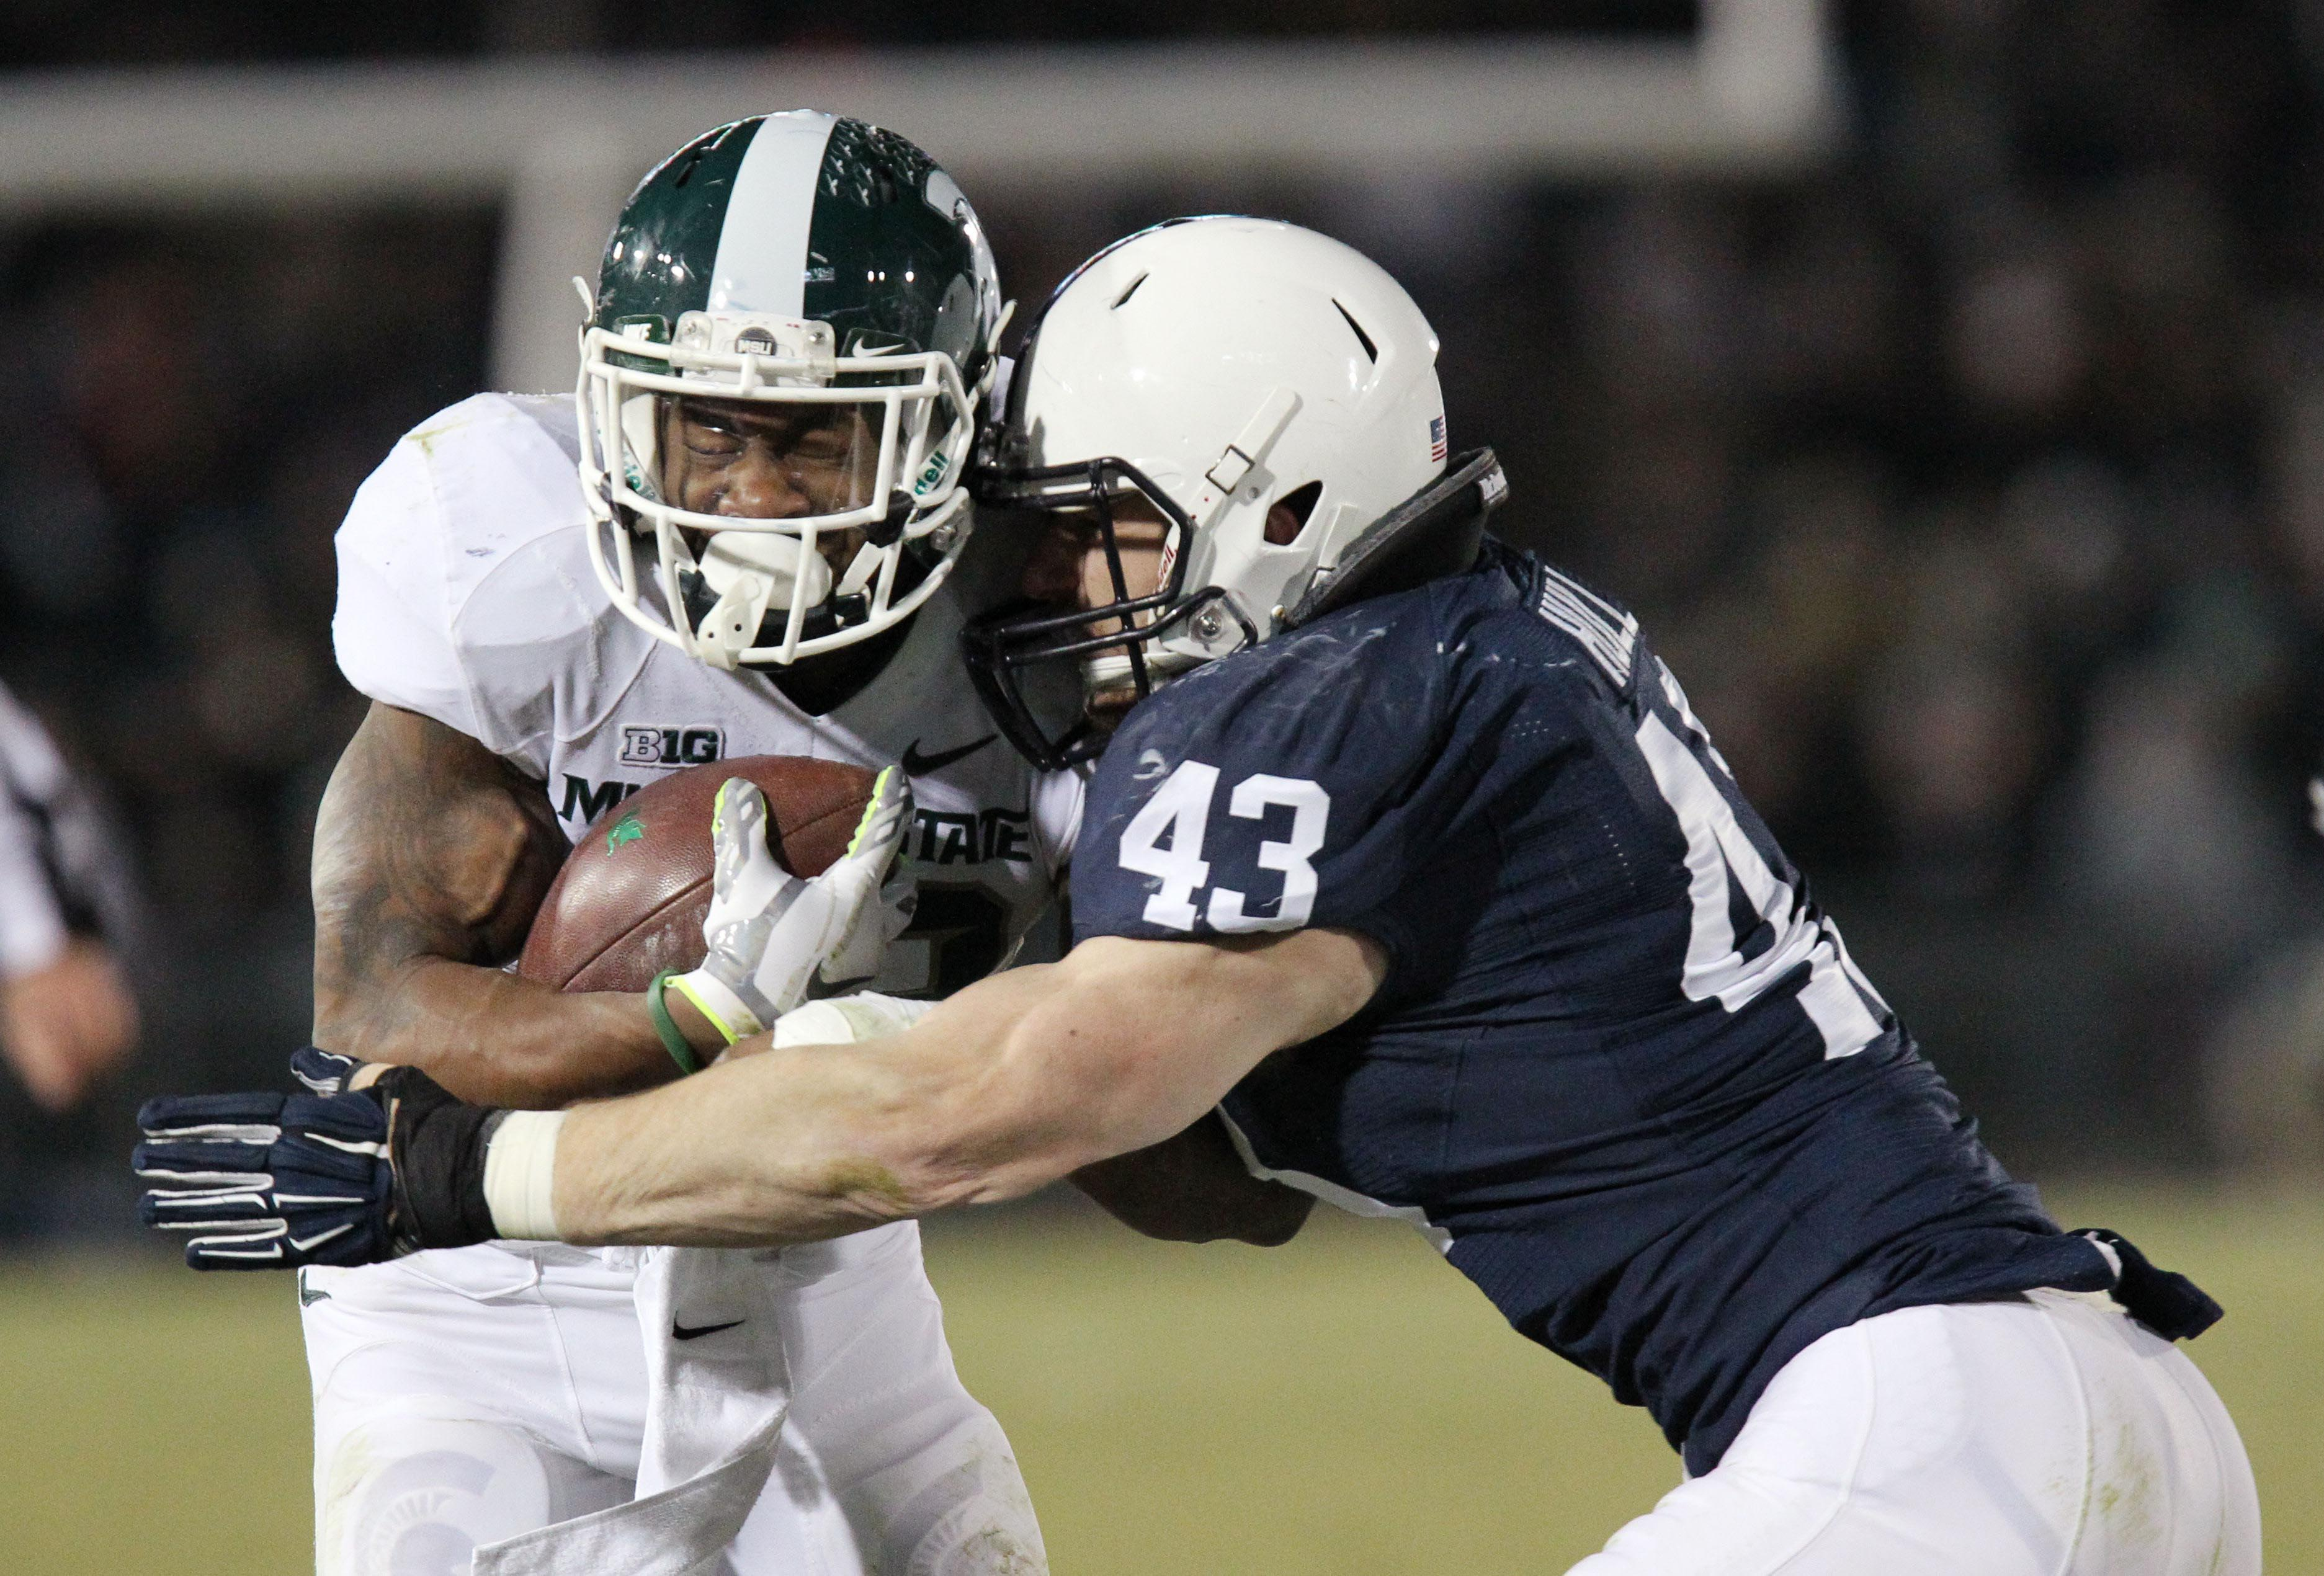 Pinstripe Bowl: Two of the nation's best defenses square off at Yankee Stadium